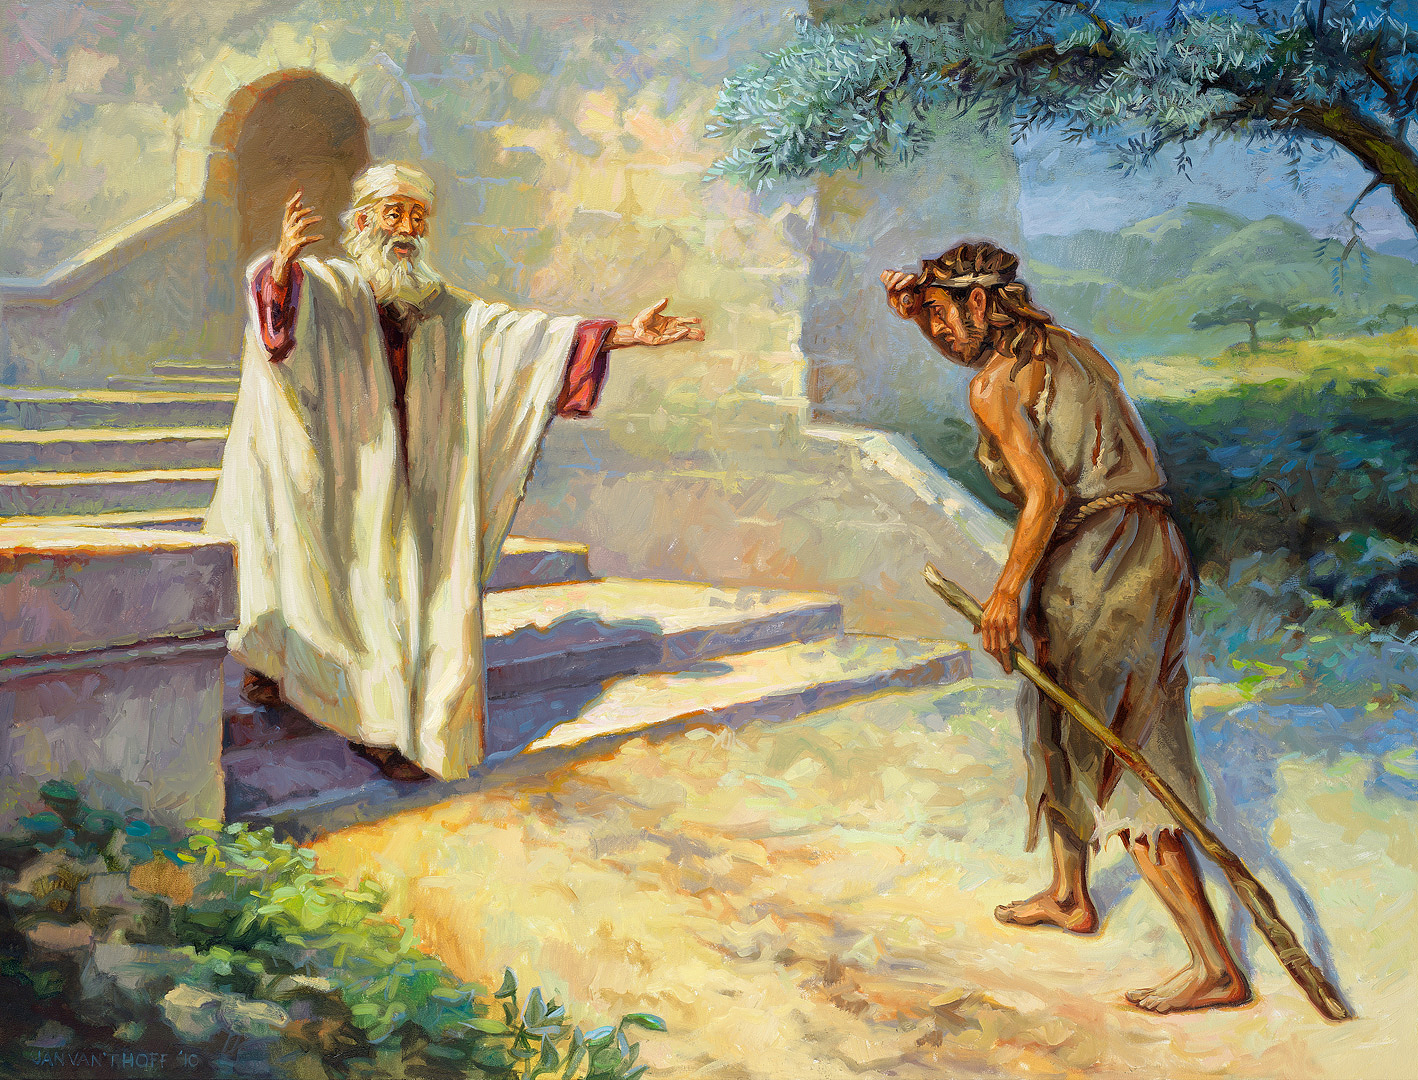 The parable of the prodigal son 1 - Gospelimages